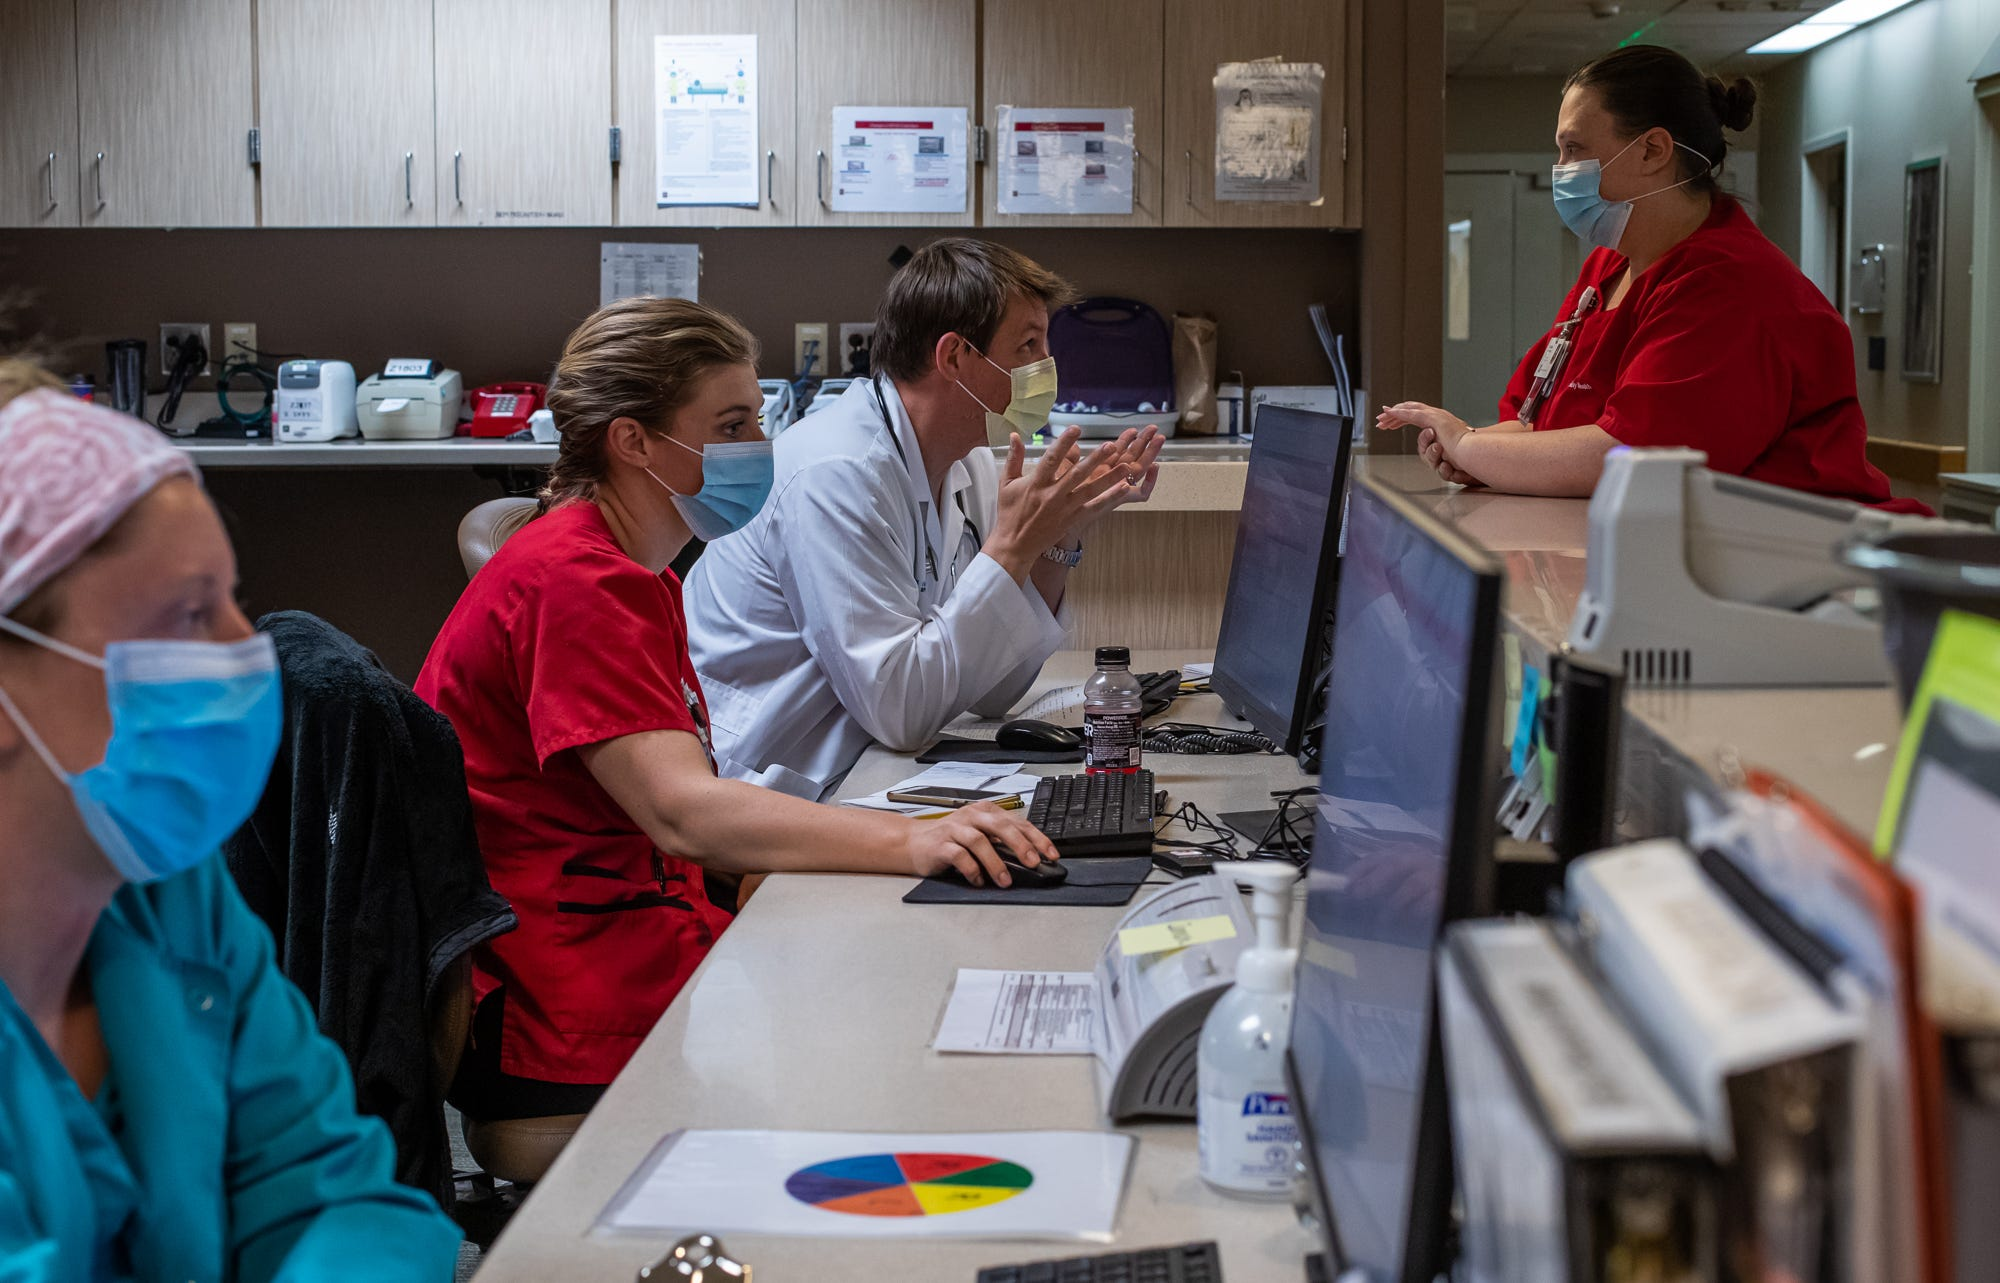 A doctor and nurse talk inside a COVID-19 unit at IU Health Methodist in Indianapolis on Thursday, April 30, 2020.